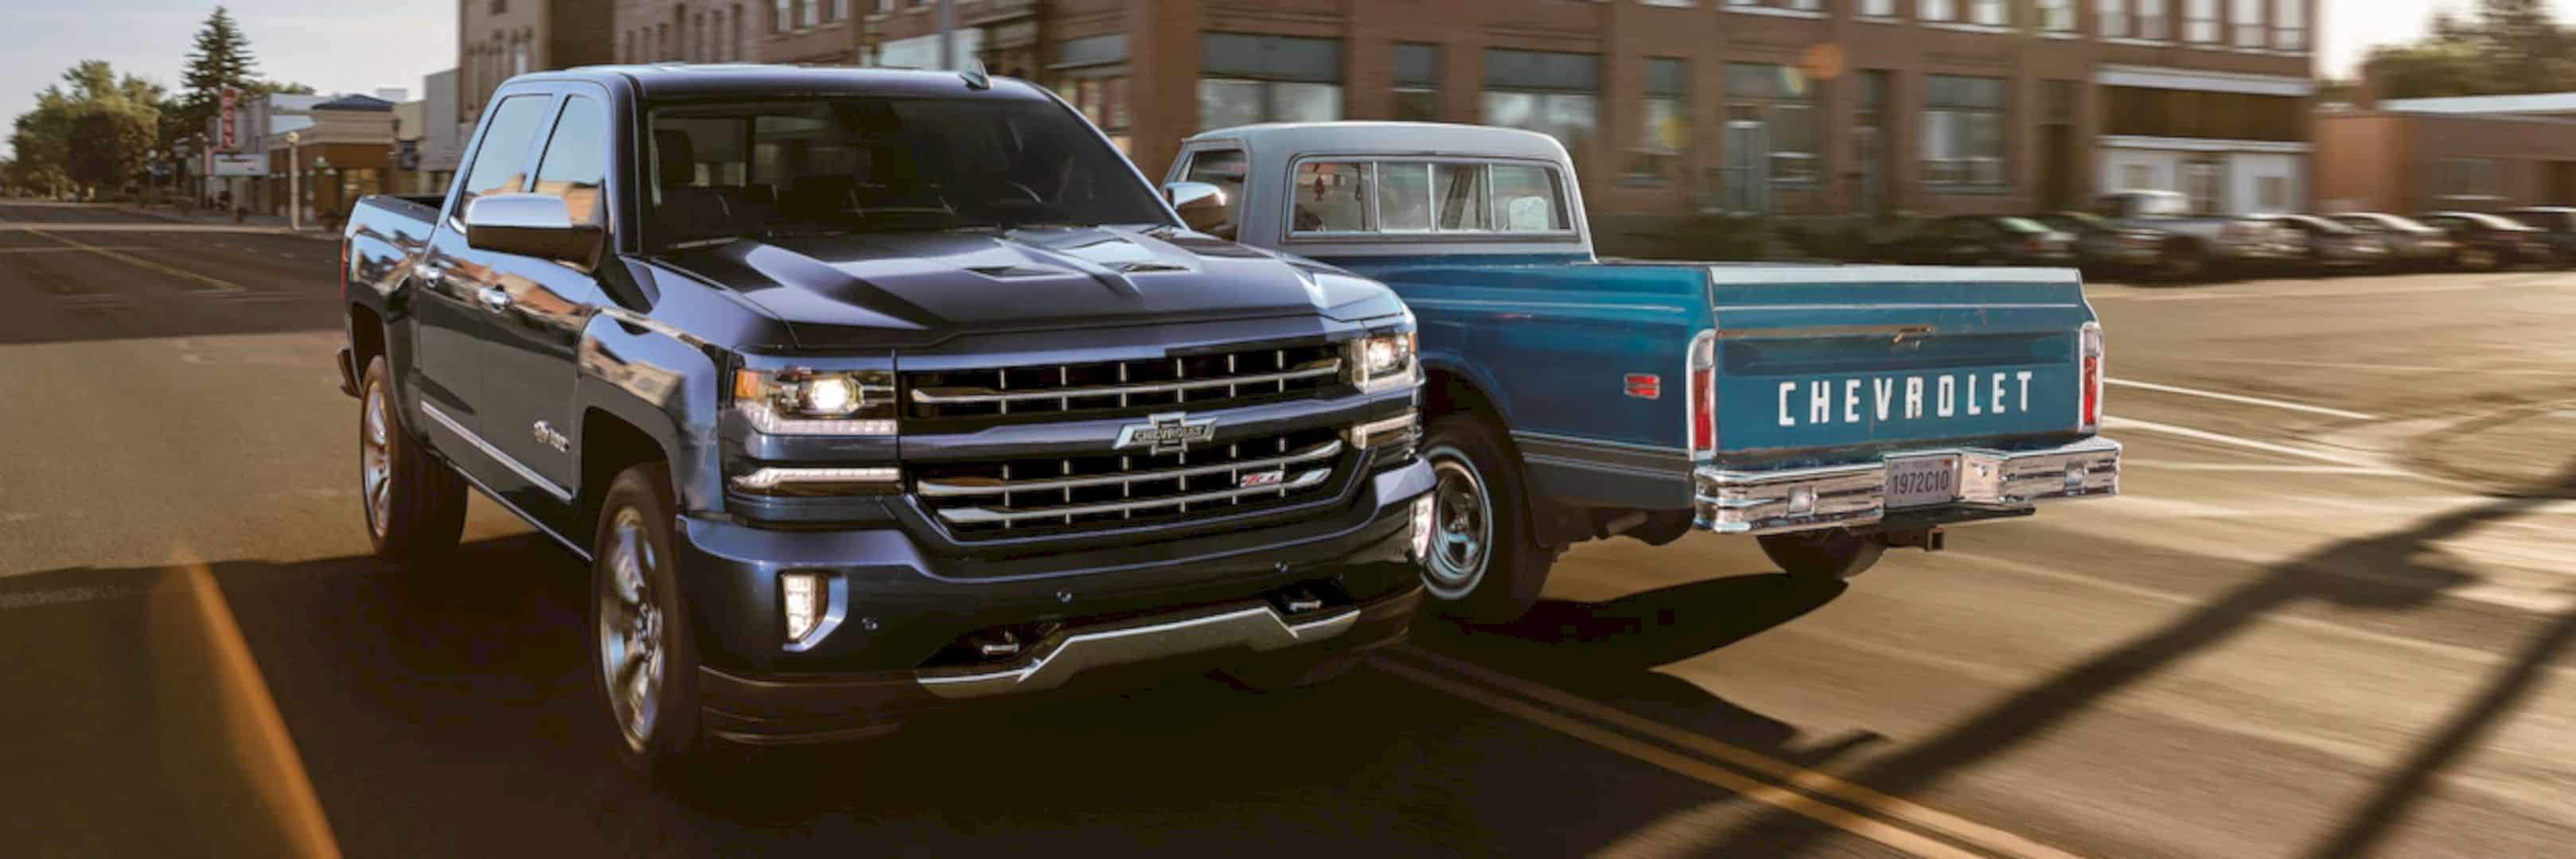 chevrolet centennial edition  100 years of legendary truck